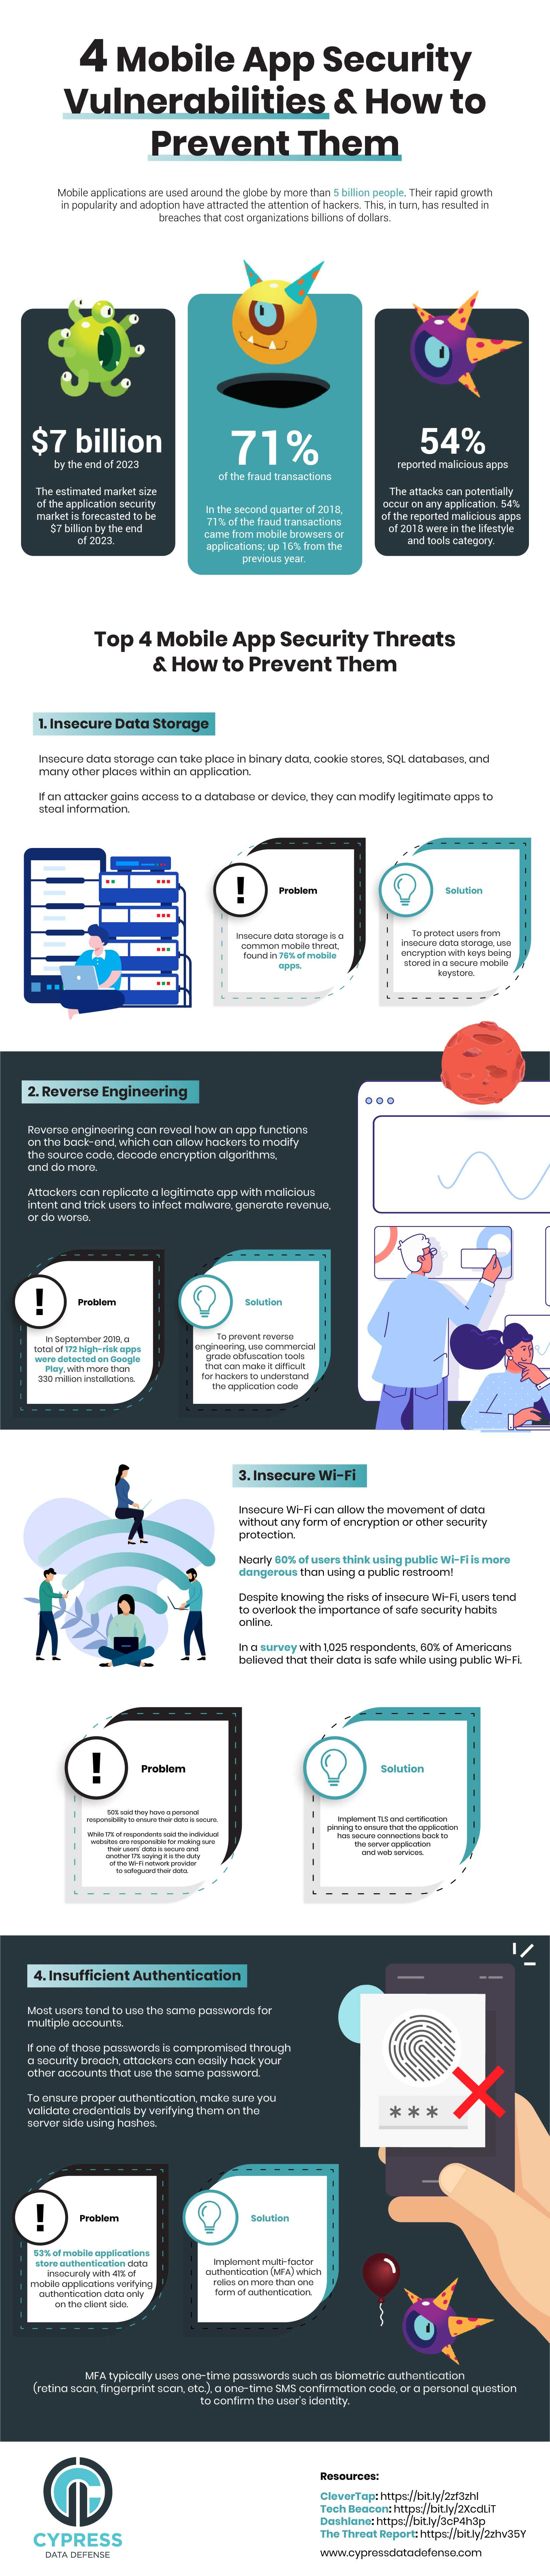 mobile app security vulnerabilities and how to mitigate them infographic